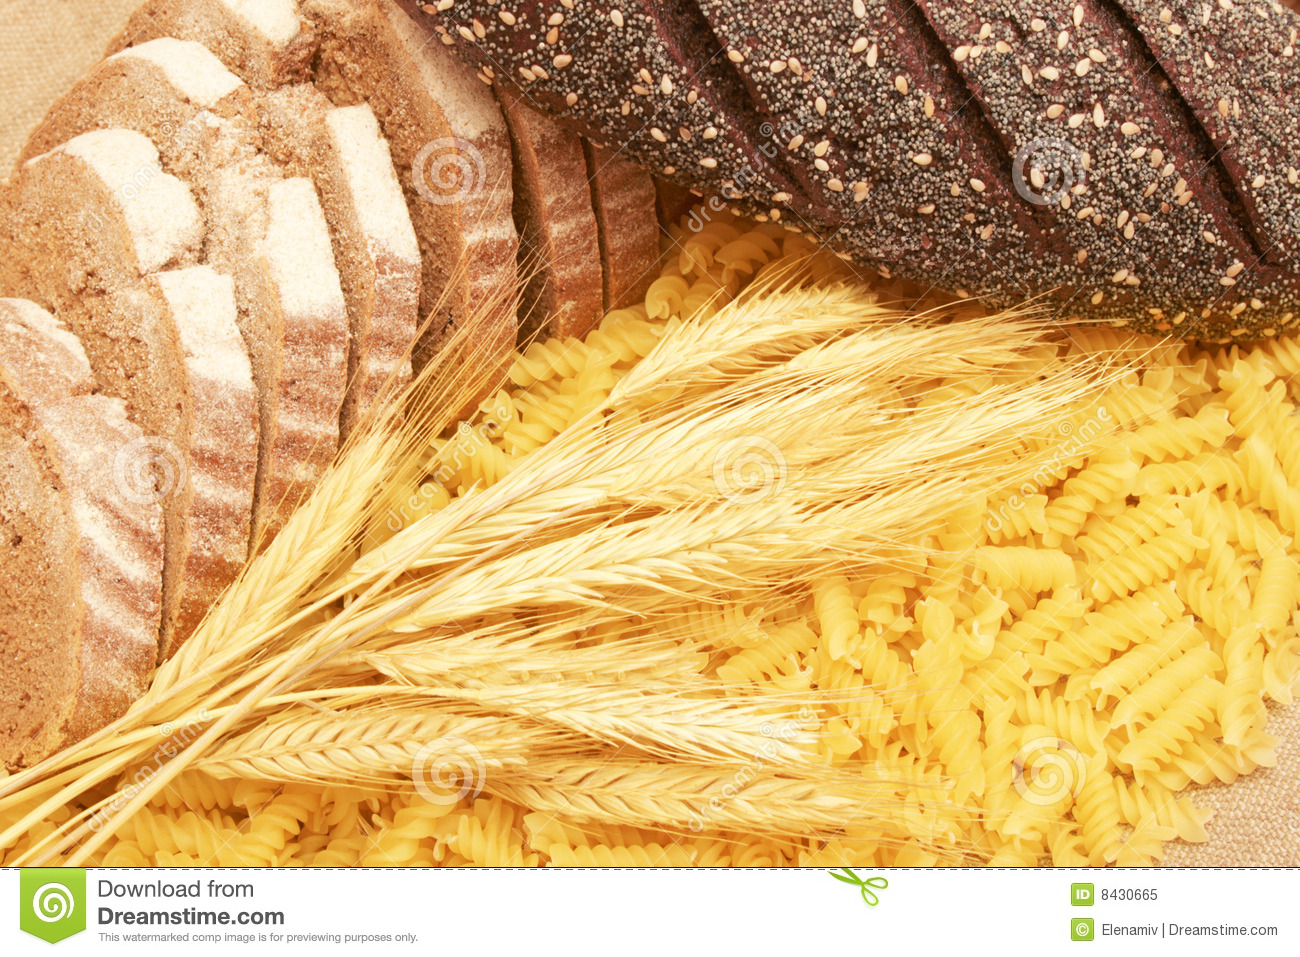 Pasta,bread and ears.